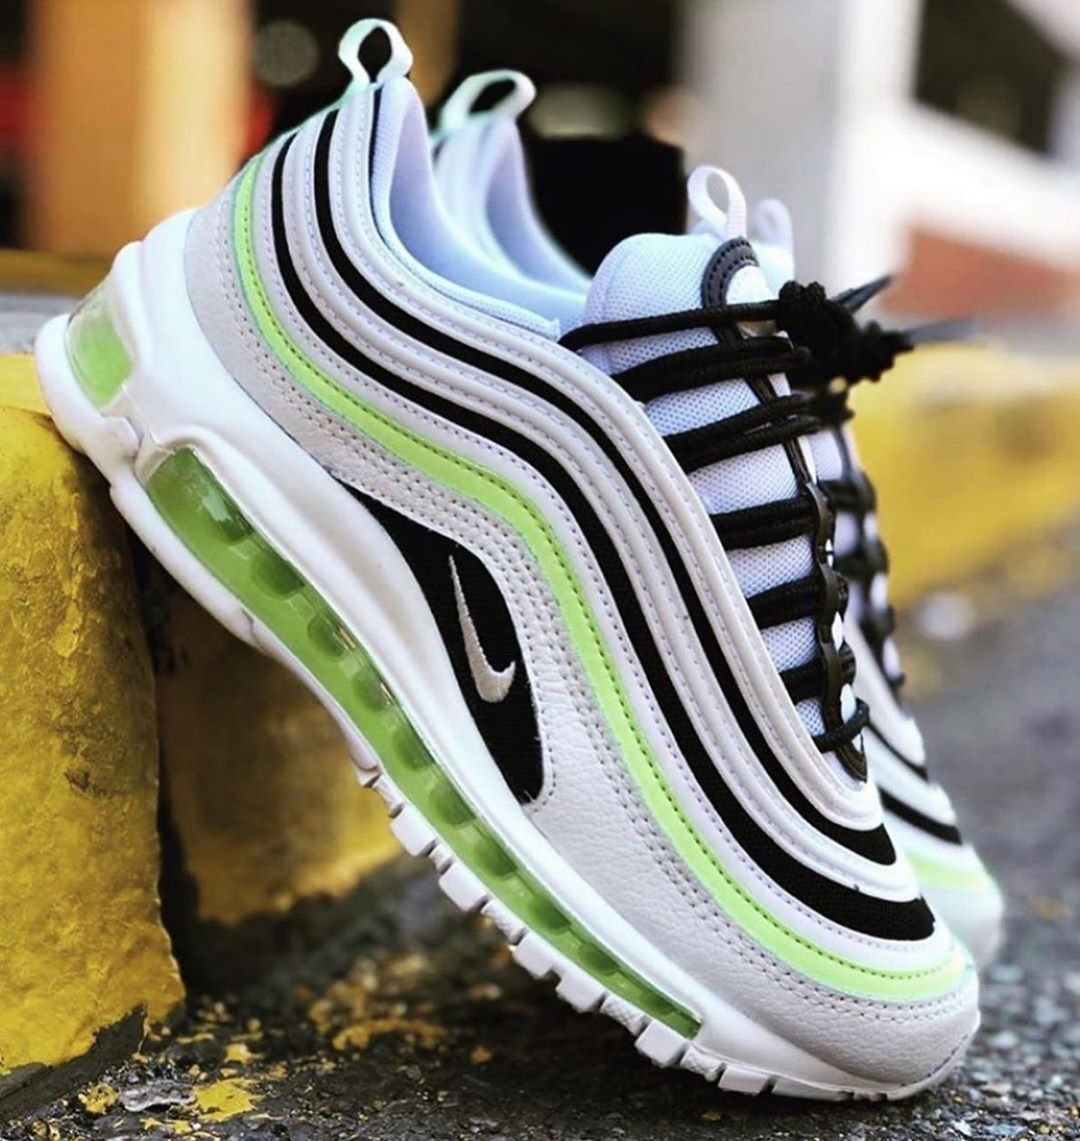 Livekickz On Instagram Nike Air Max 97 White Grey Black Volt All Men Sizes Available Now Online At Www Live K Nike Shoes Air Max Nike Air Max 97 Nike Air Max